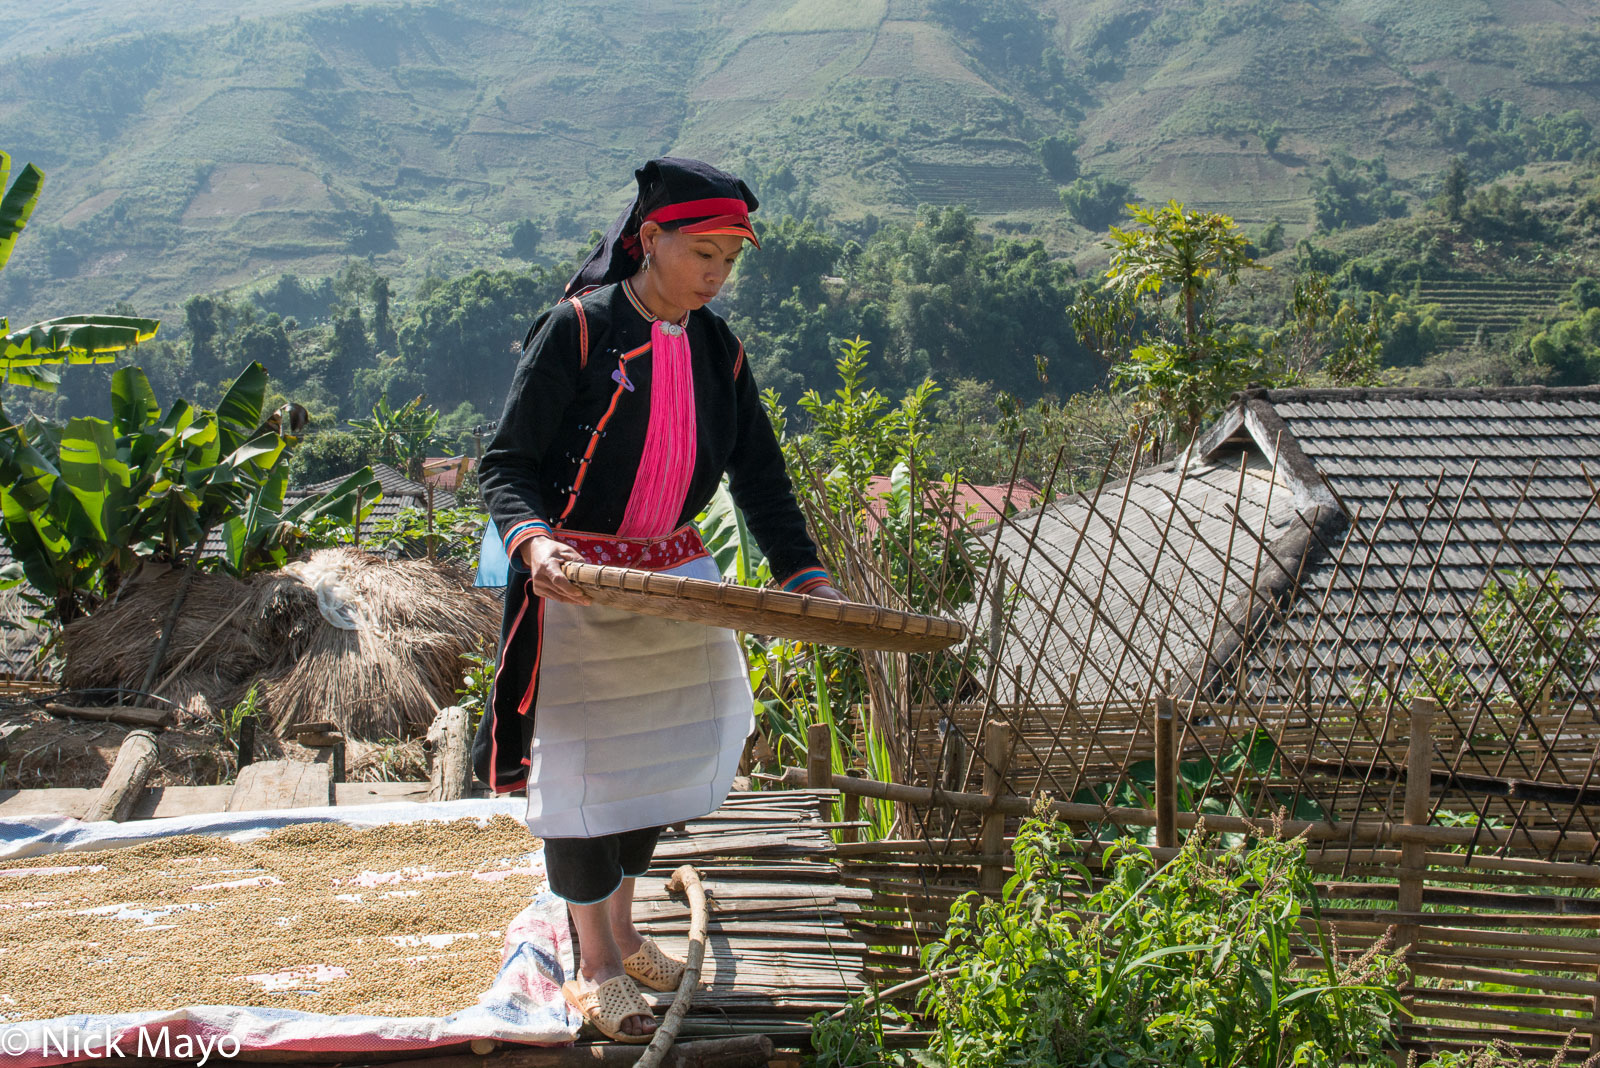 Apron, Earring, Hat, Lai Chau, Vietnam, Winnowing, Yao, photo